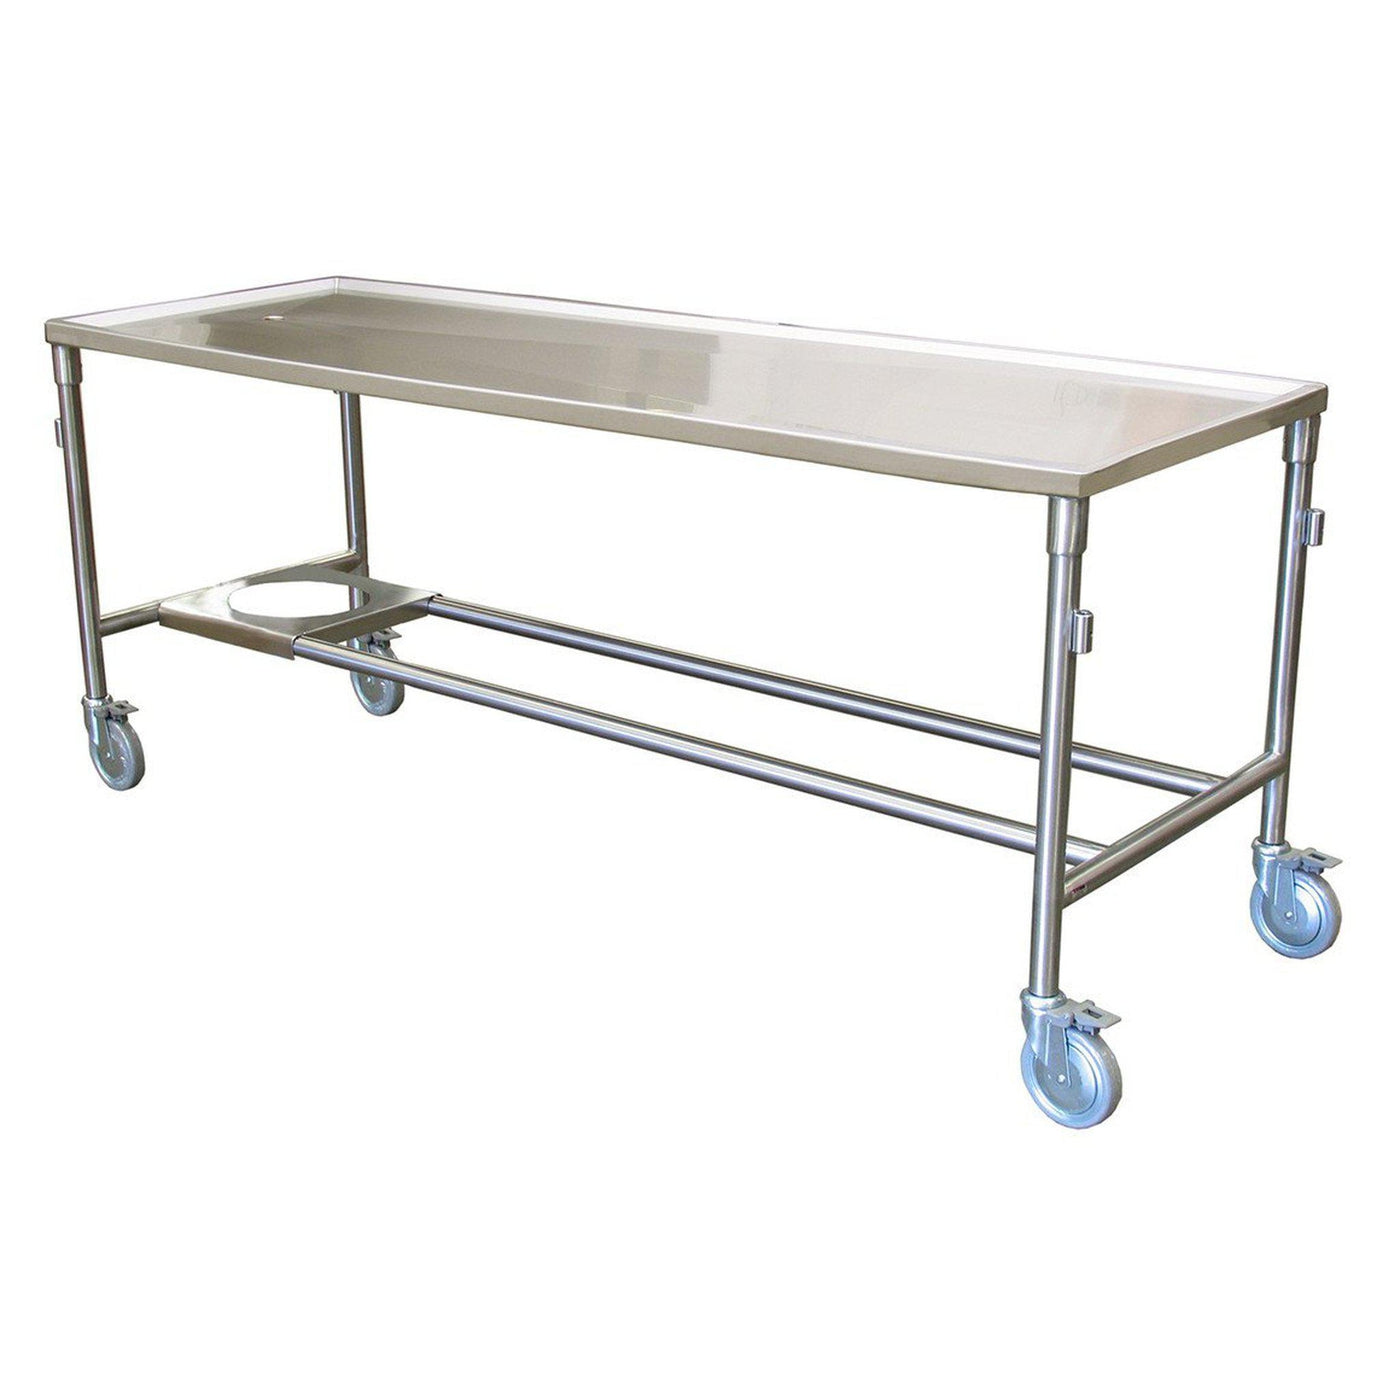 Standard Dissection Platform-Anatomy Dissection Tables-Mortech Manufacturing Company Inc. Quality Stainless Steel Autopsy, Morgue, Funeral Home, Necropsy, Veterinary / Anatomy, Dissection Equipment and Accessories